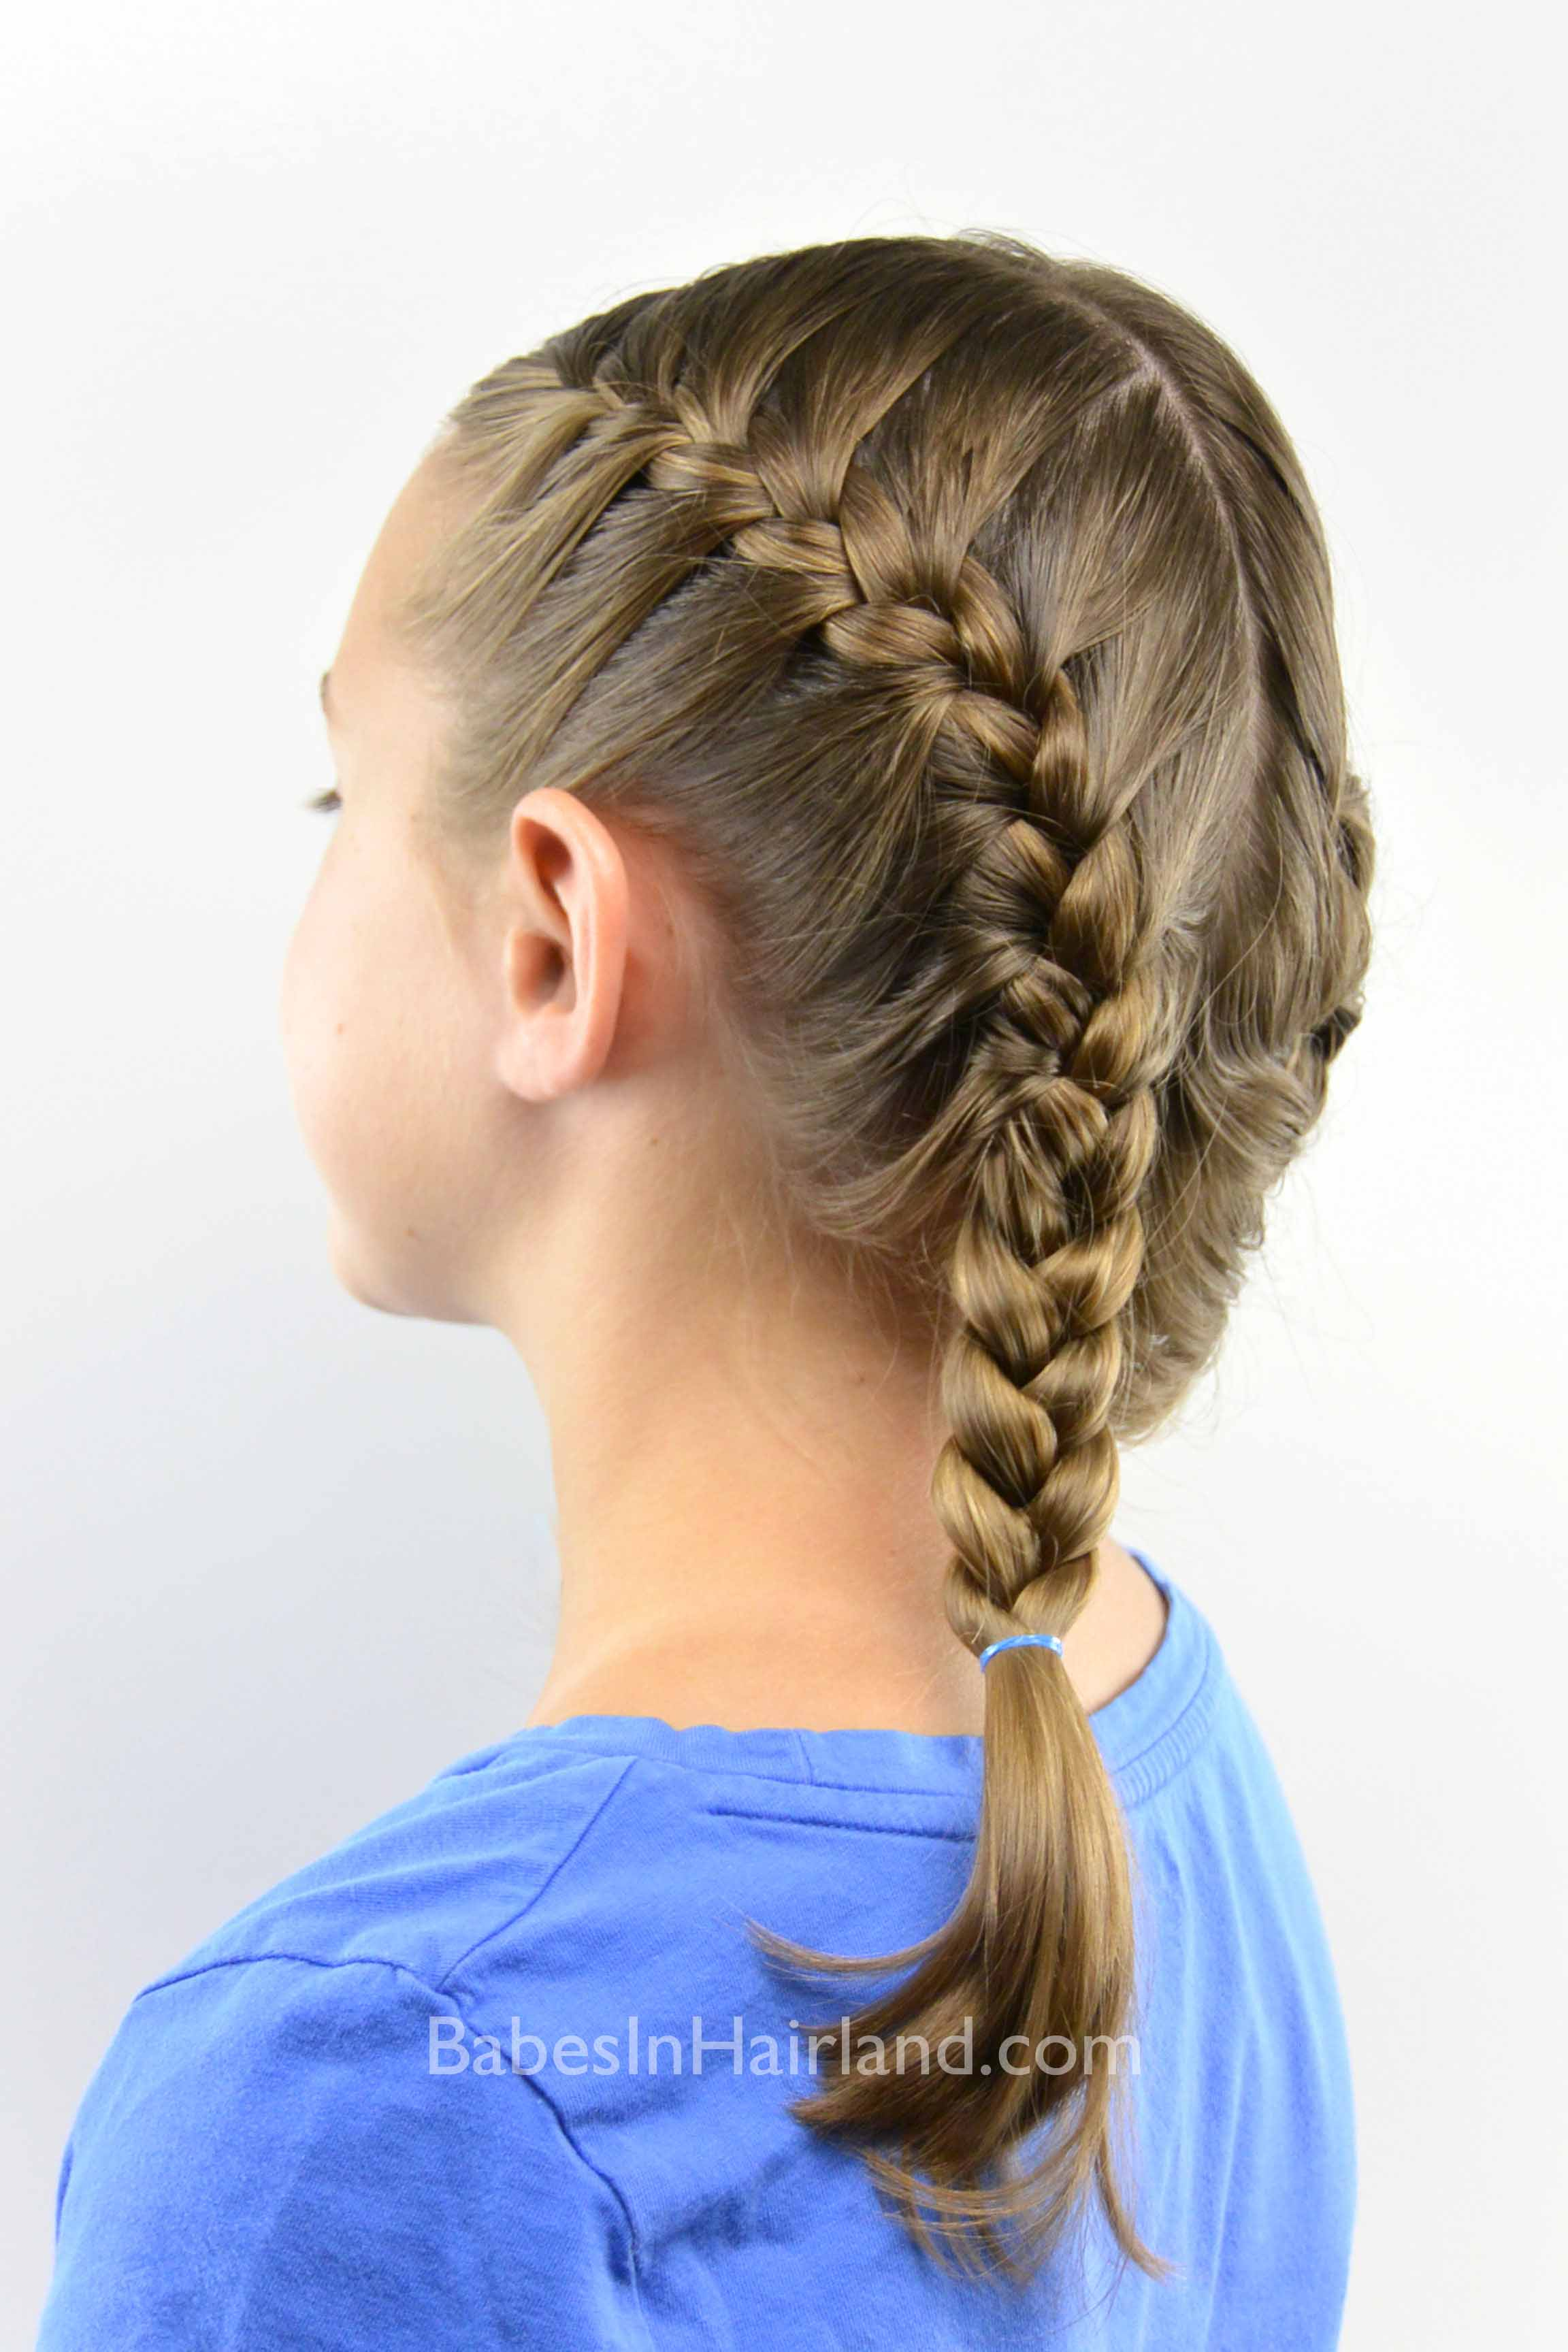 French braiding tips -  How To Get A Tight French Braid From Babesinhairland Com Frenchbraid Hairtips